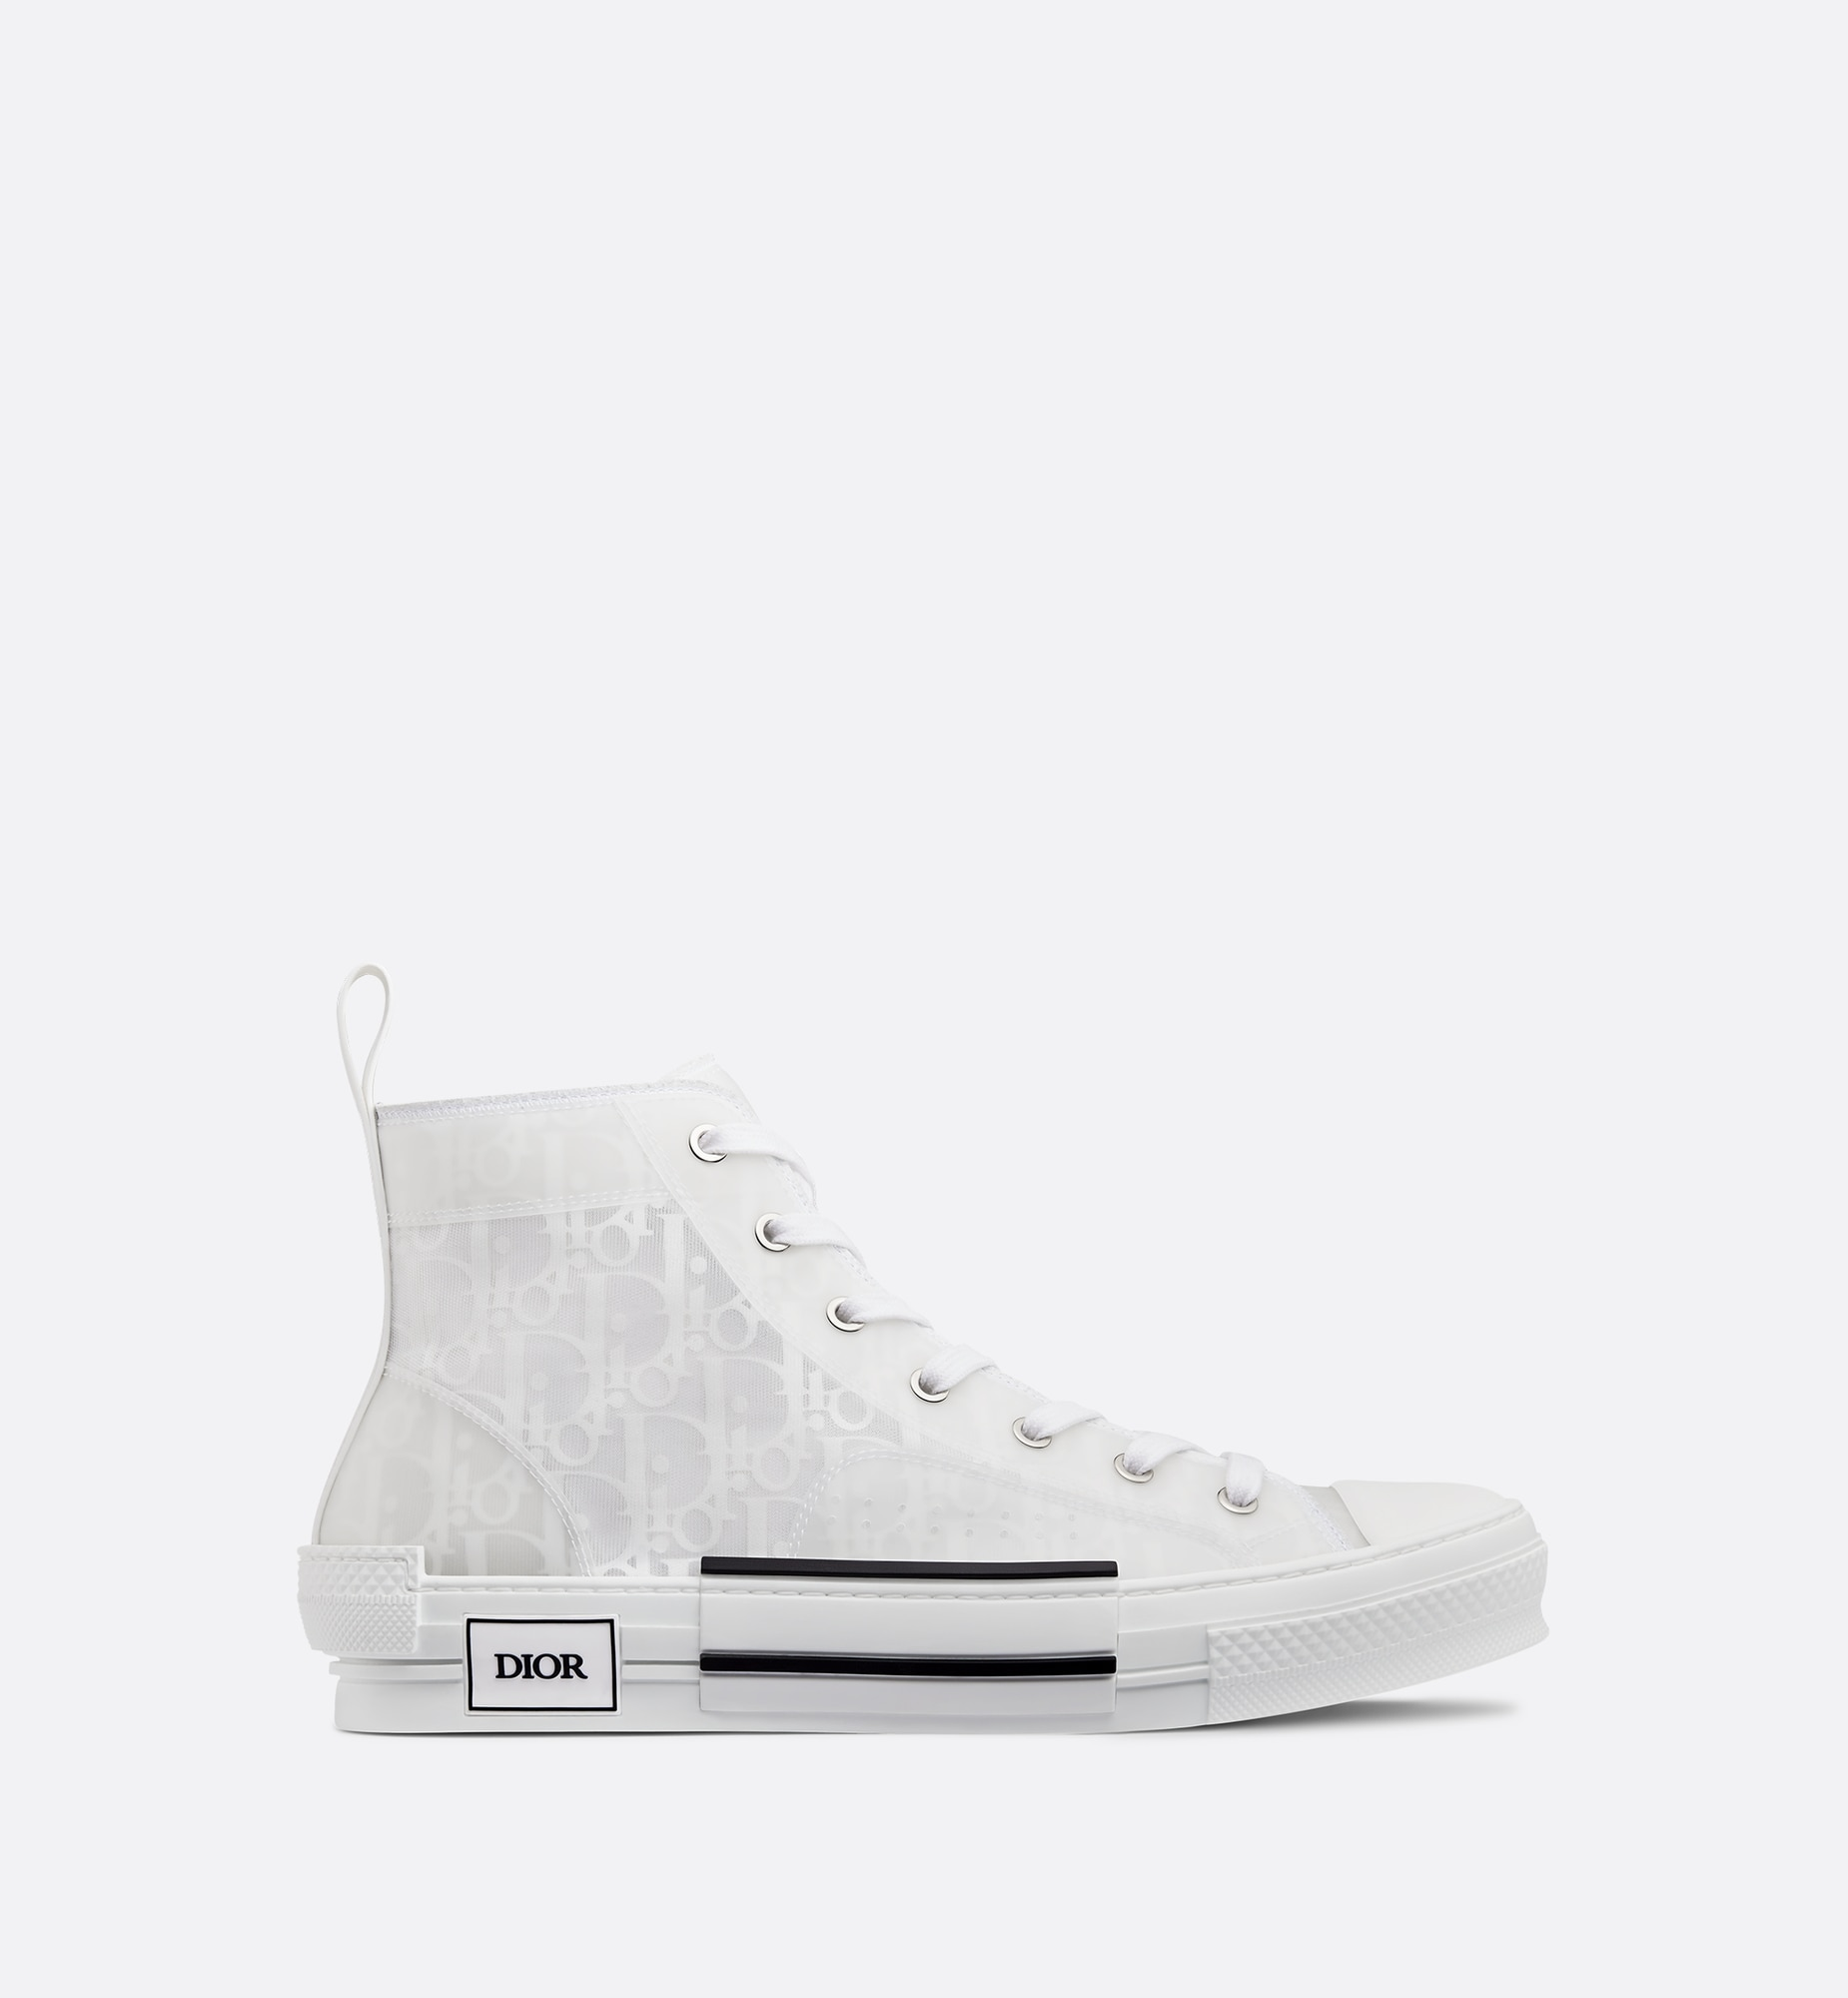 b23 high-top sneaker | Dior Profile view